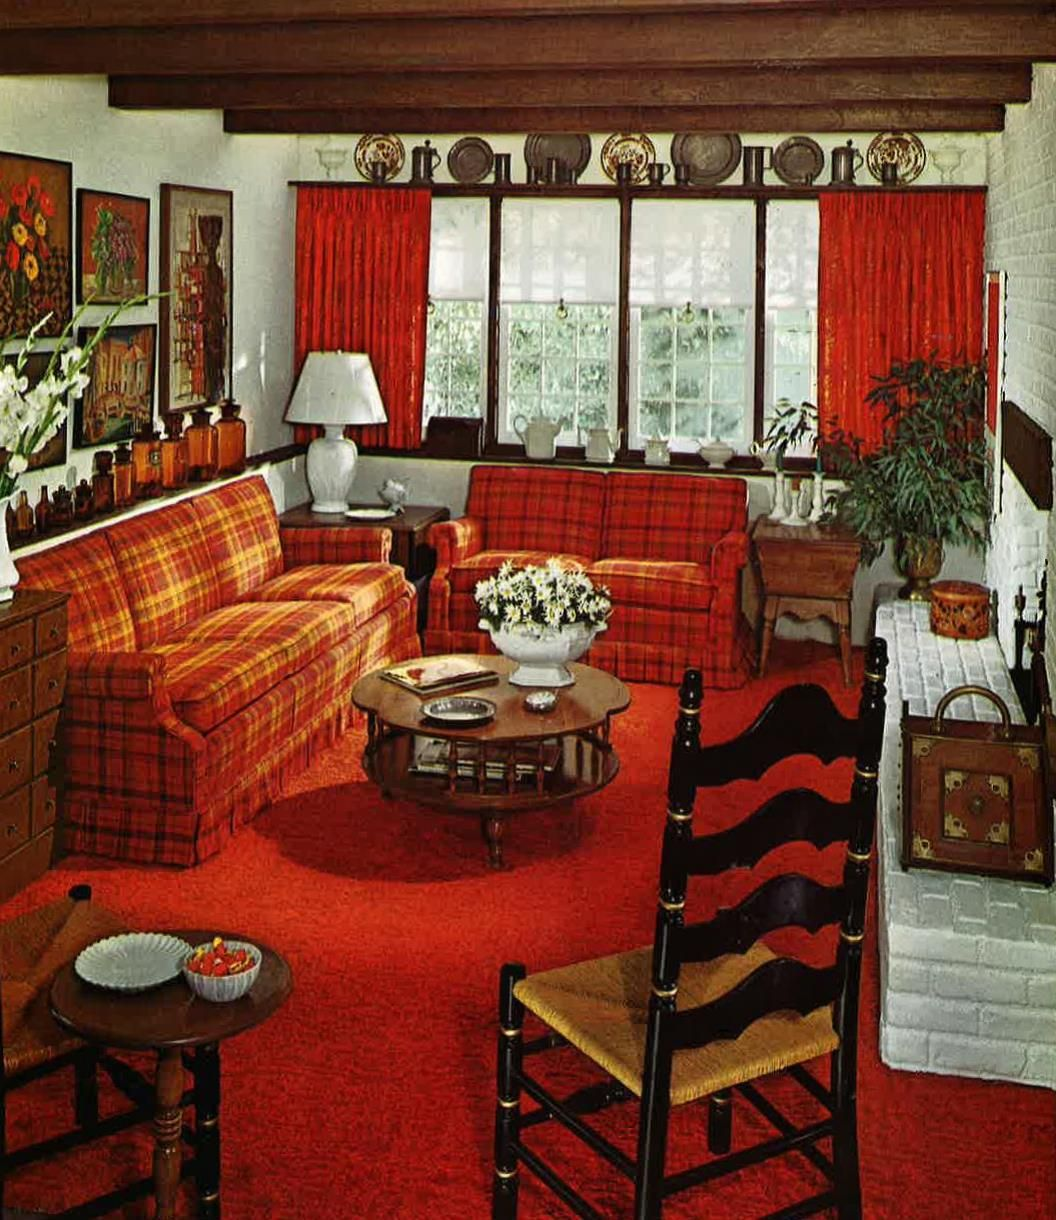 Early American Bedroom Furniture Vaulted Ceiling Bedroom Bedroom Furniture Oak Bedroom Bed Head Ideas: Ethan Allen 1972 Living Room